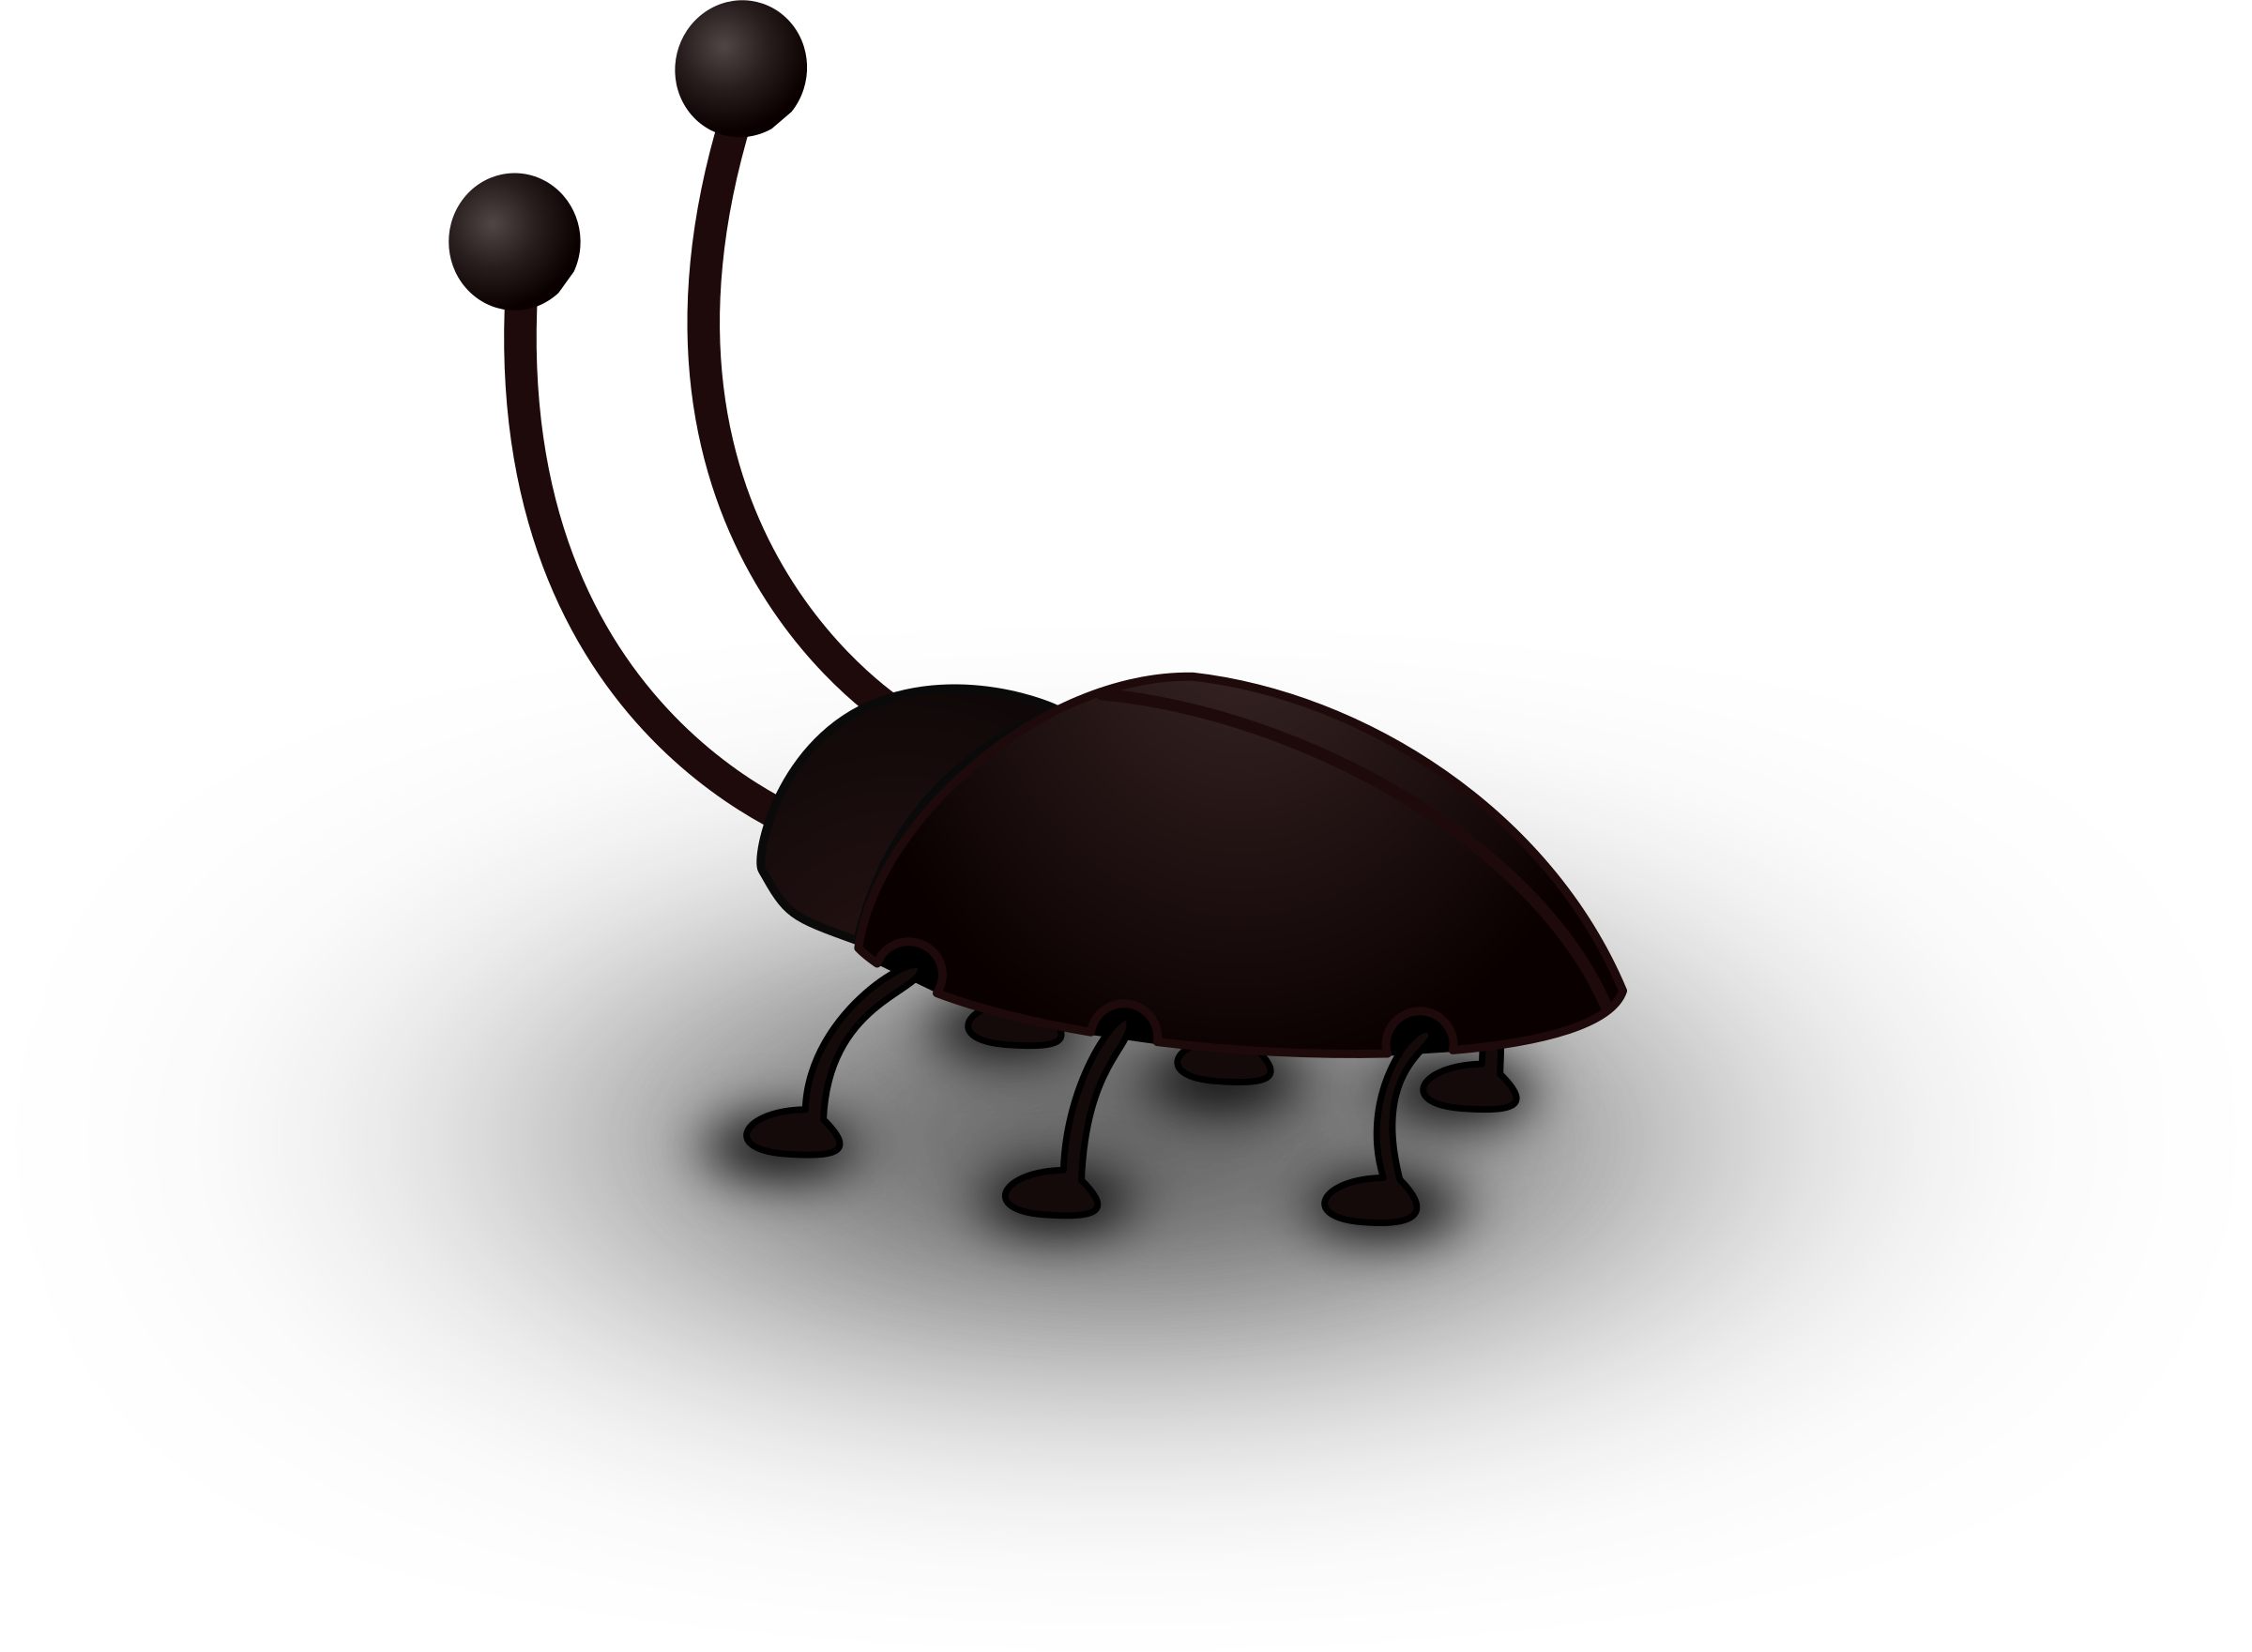 Insect clipart bug. Bugs big black cockroach